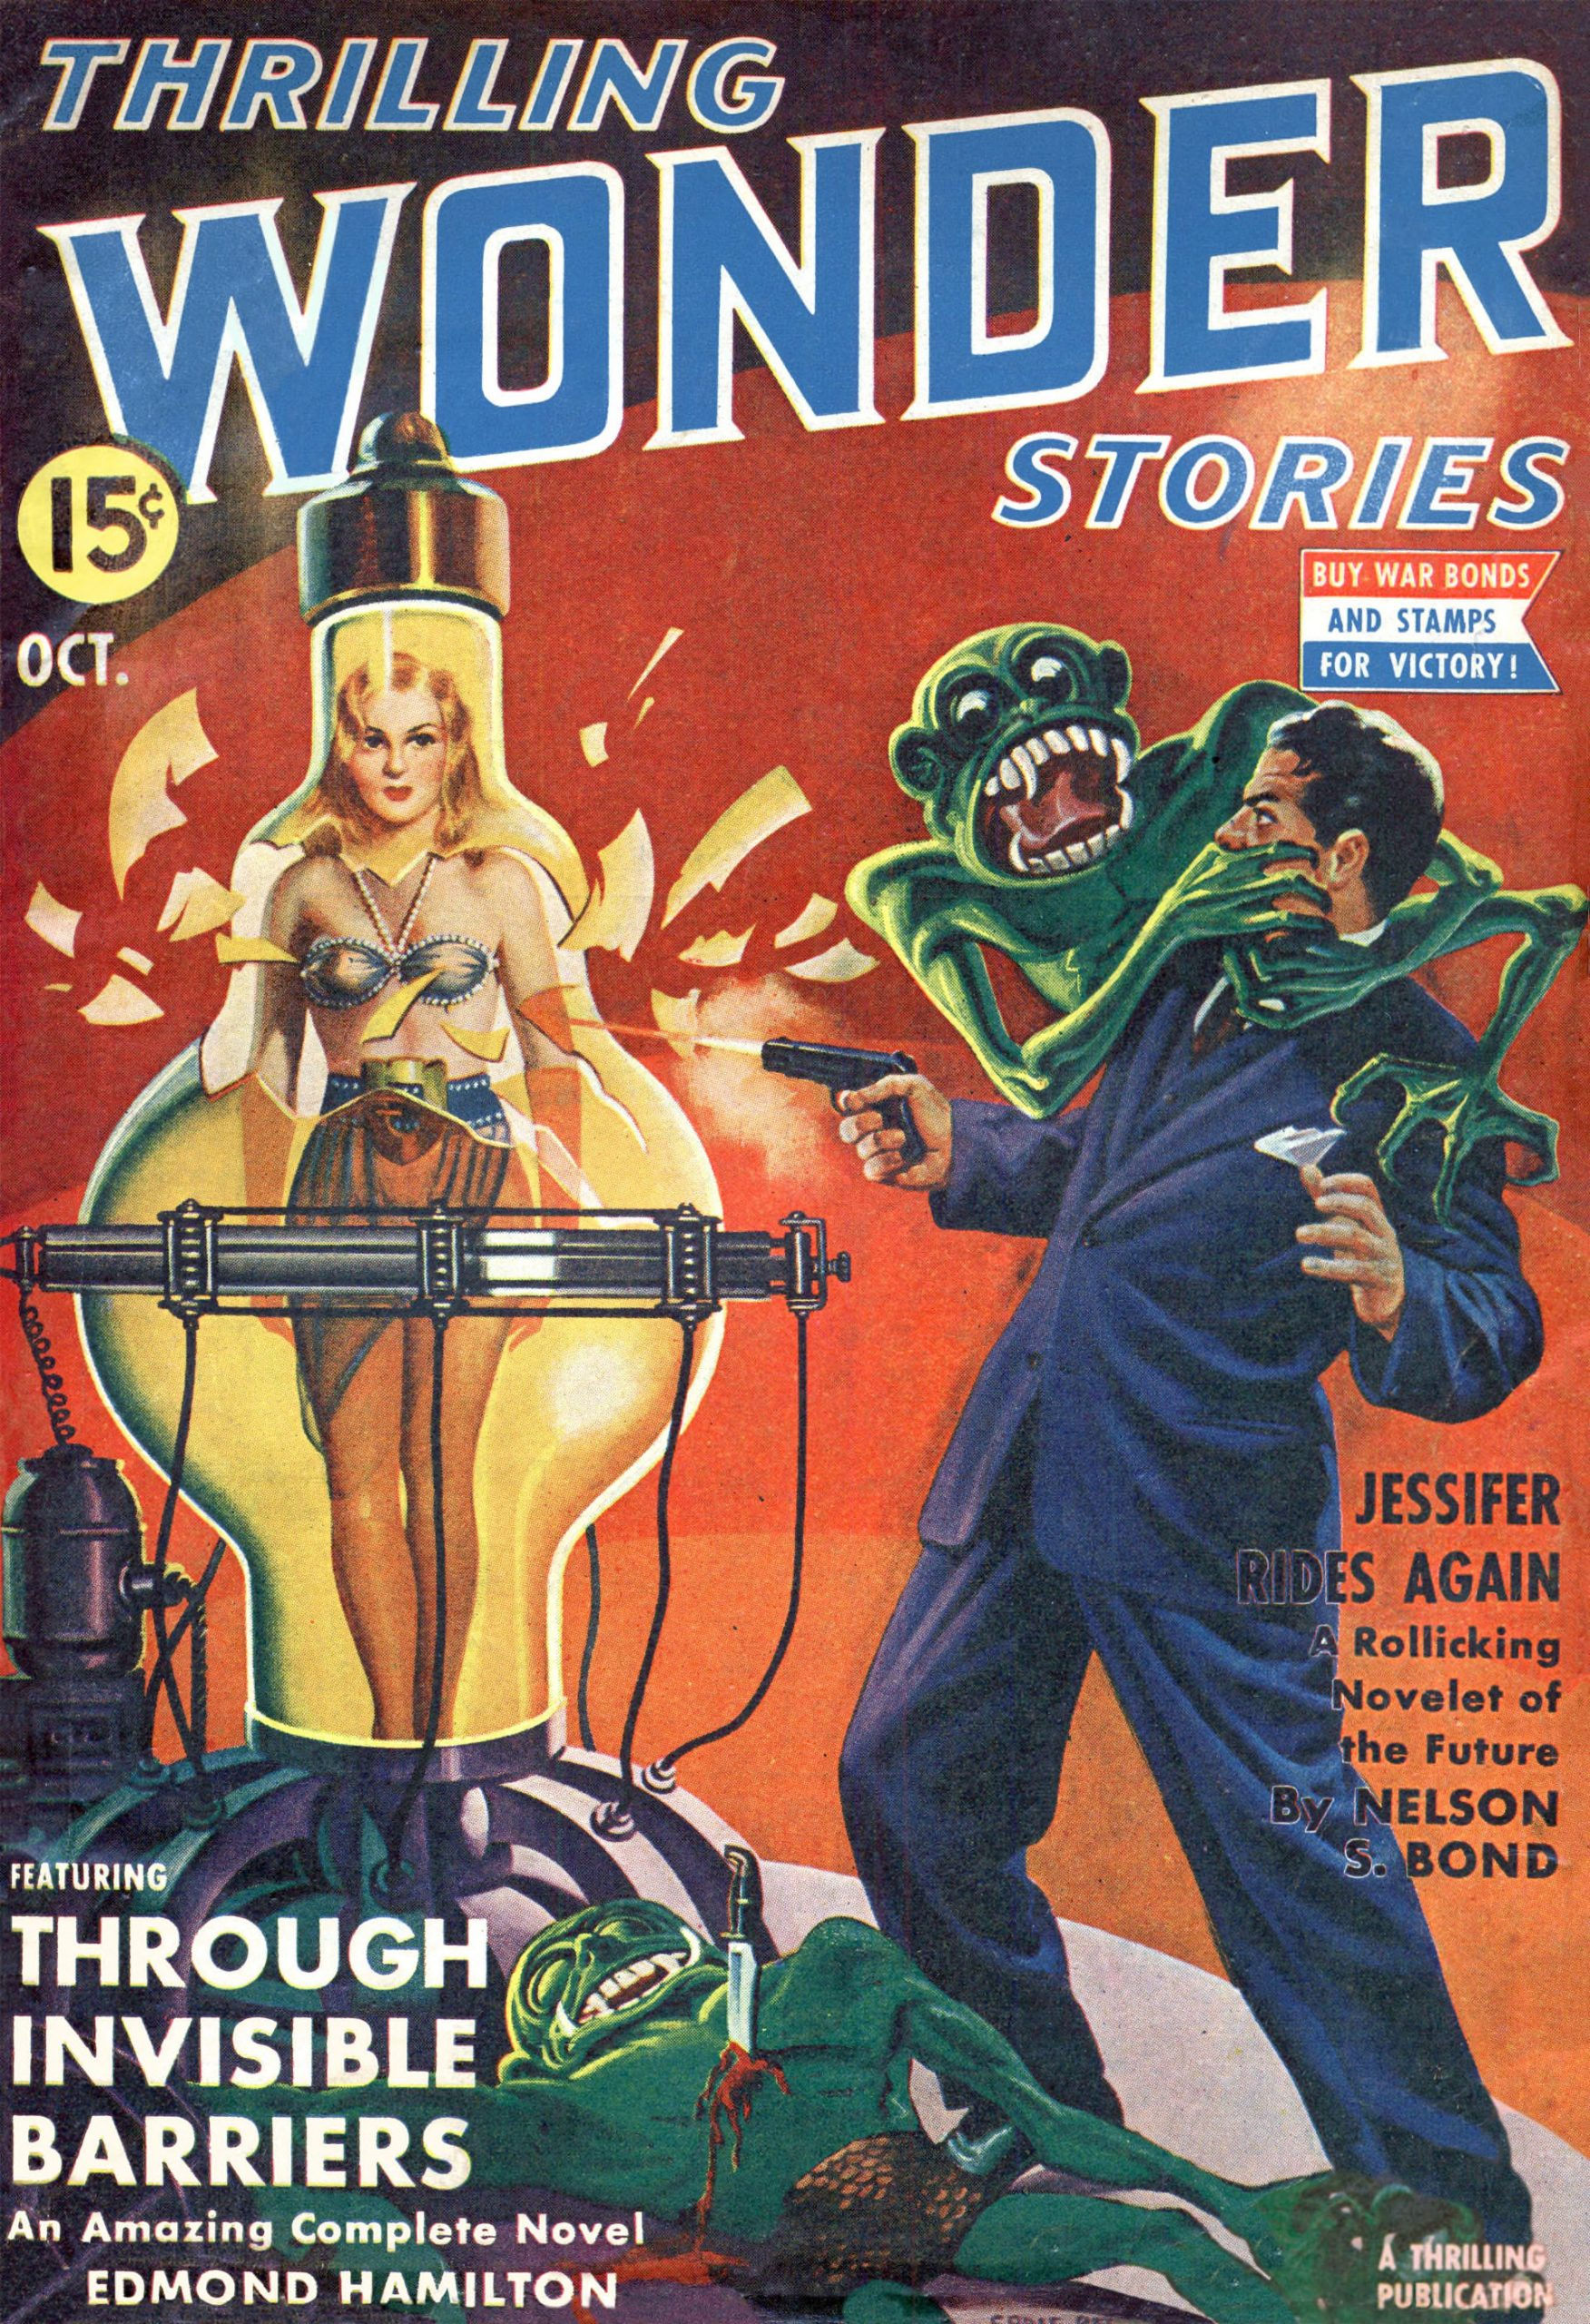 A scientist shoots a scantily-clad woman out of a tube while a simian creature assaults him from behind.